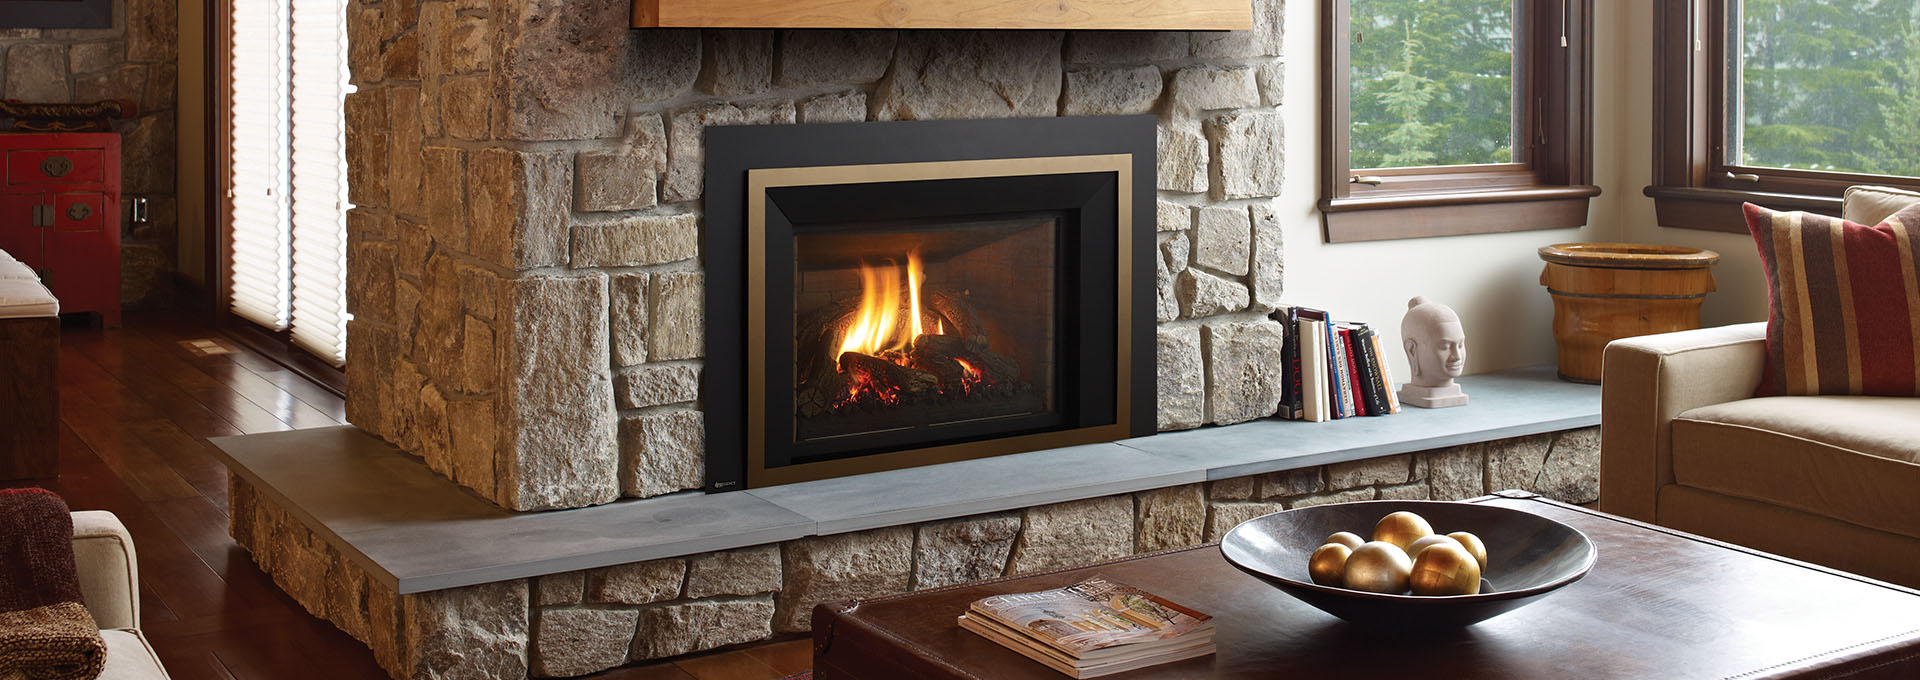 costco fireplace images electric in with imageid recipename jacob imageservice profileid fireplaces dimplex firebox